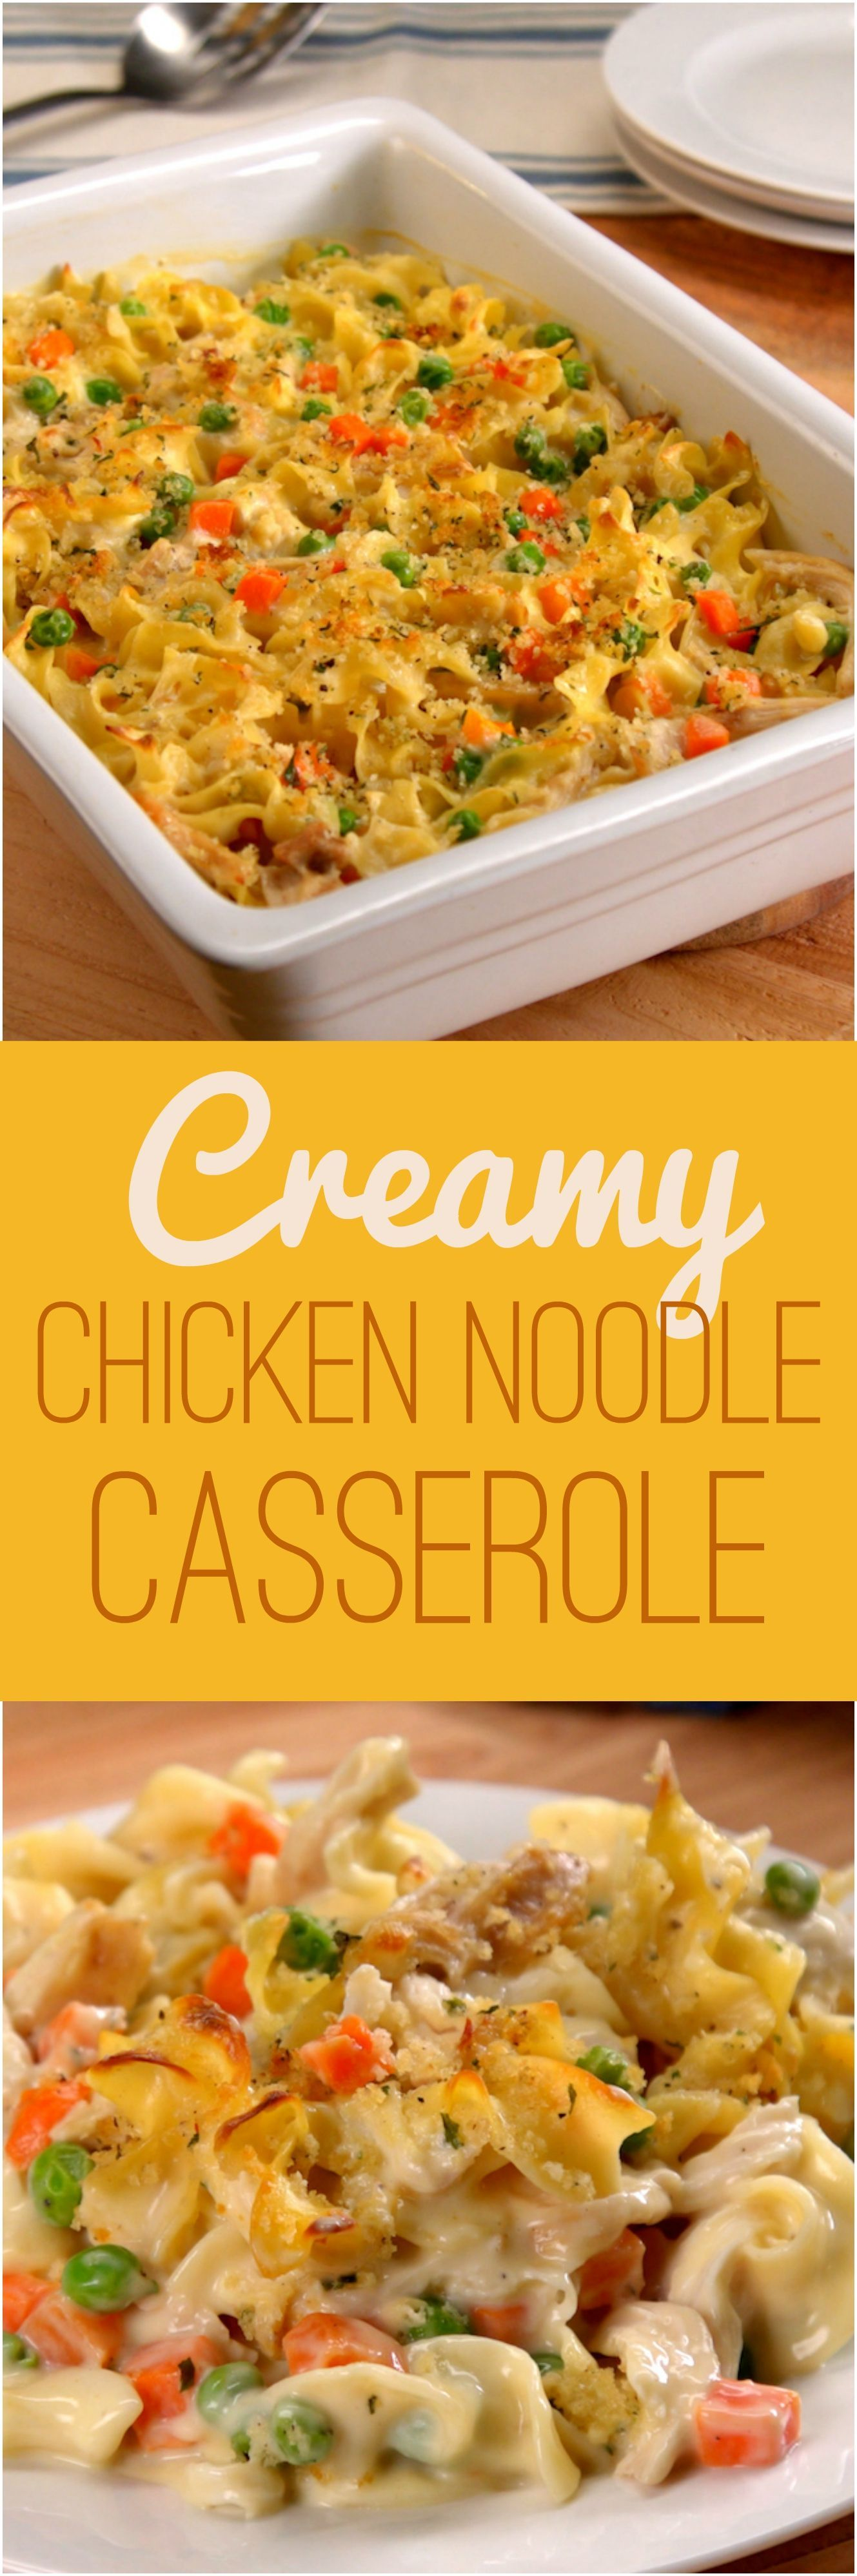 Chicken Noodle Casserole Chicken noodle soup is a magic food, and transforming the classic dish into a casserole only amplifies its comforting effects. This 30-minute chicken dinner has all the elements of traditional chicken soup: hearty egg noodles, tender chicken, peas 'n' carrots — but with a creamy sauce and crunchy topping that'll make y